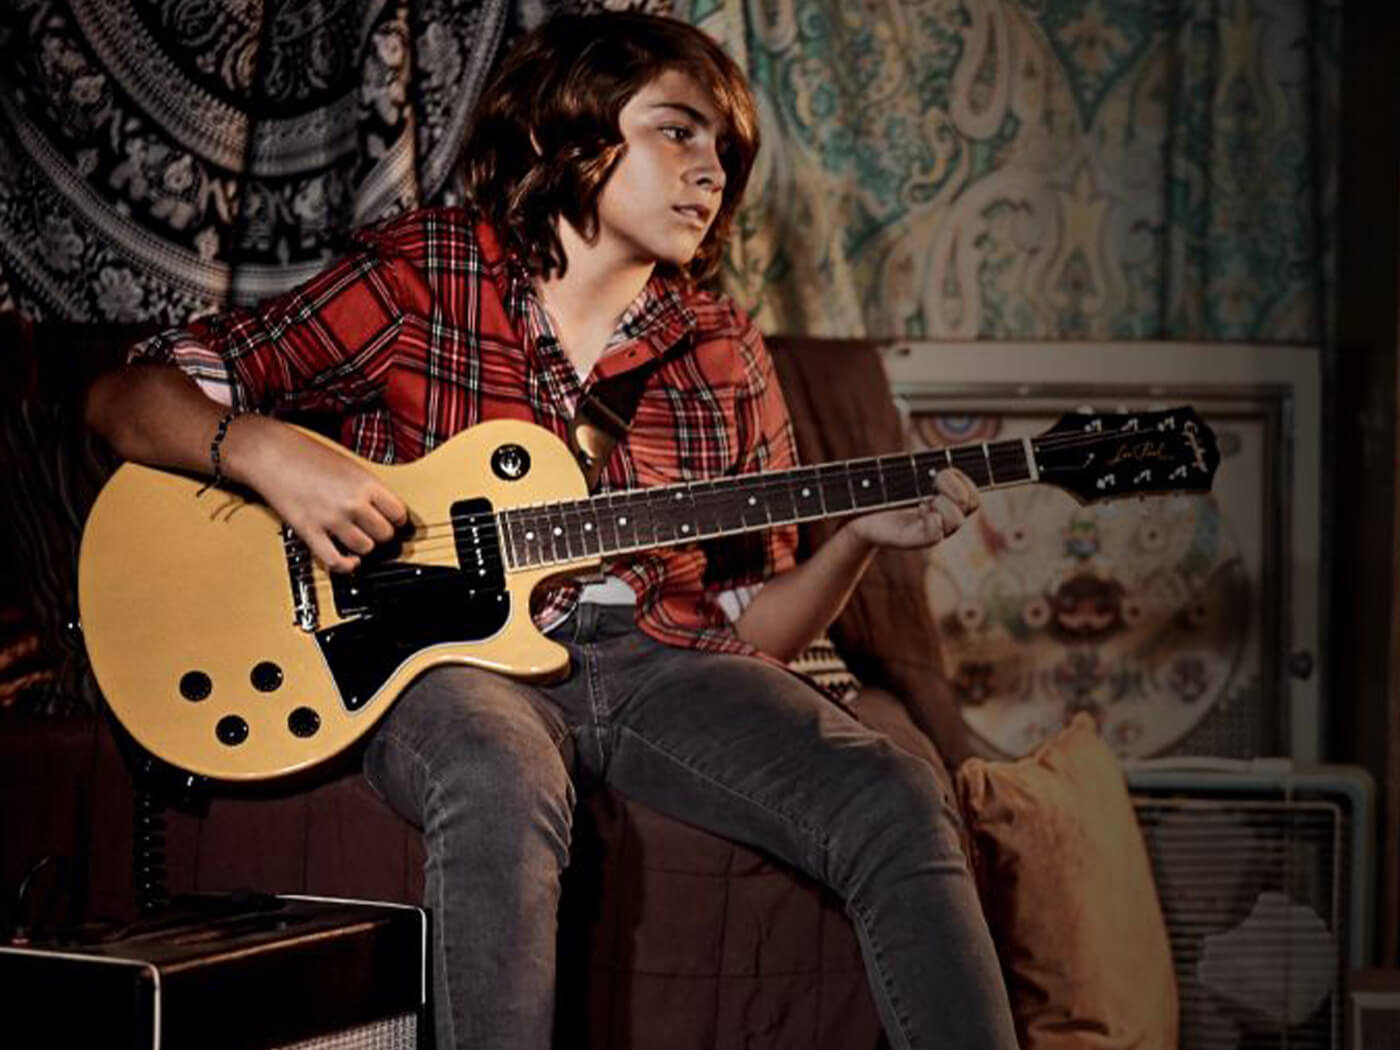 15 Websites To Learn Electric Guitar Lessons Online (Free And Paid) - CMUSE